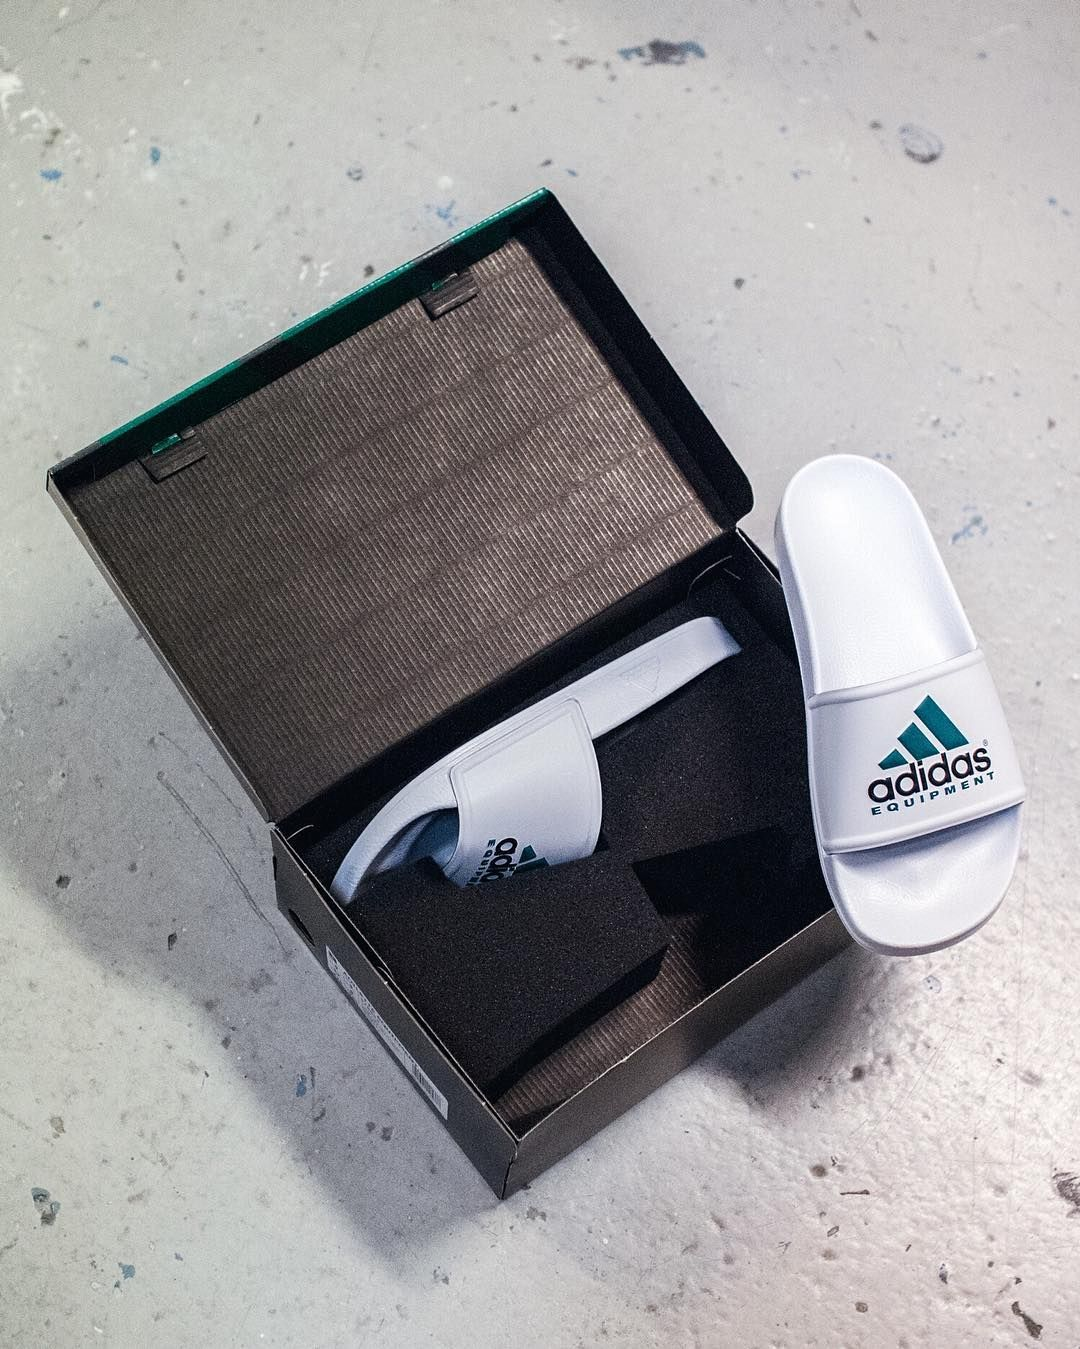 f546a75a40c This adidas EQT Adilette comes in a special looking box. Soon available at  SNS .  sneakersnstuff  adidas  adilette by sneakersnstuff